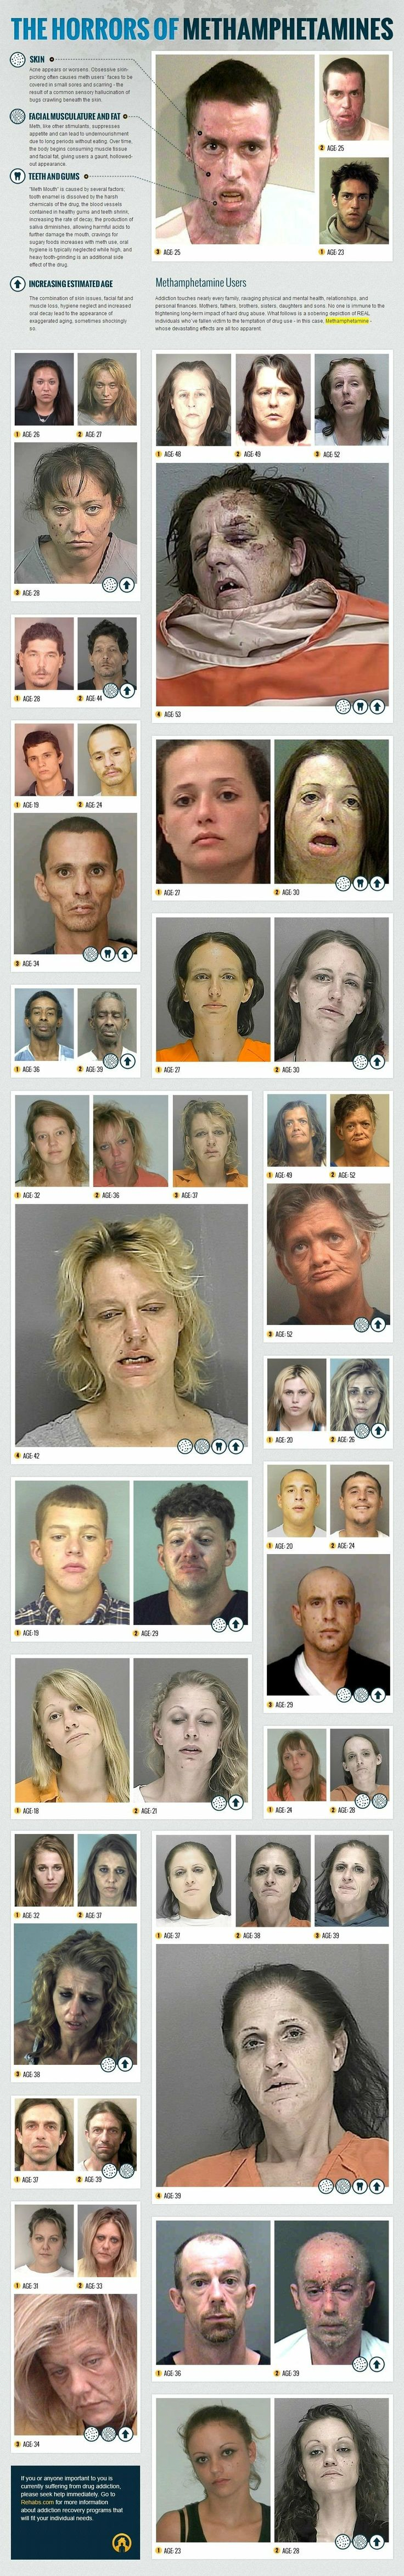 This New 'Faces Of Meth' Ad Is Utterly Harrowing  Read more: http://www.businessinsider.com/new-faces-of-meth-ads-are-utterly-harrowing-2012-12